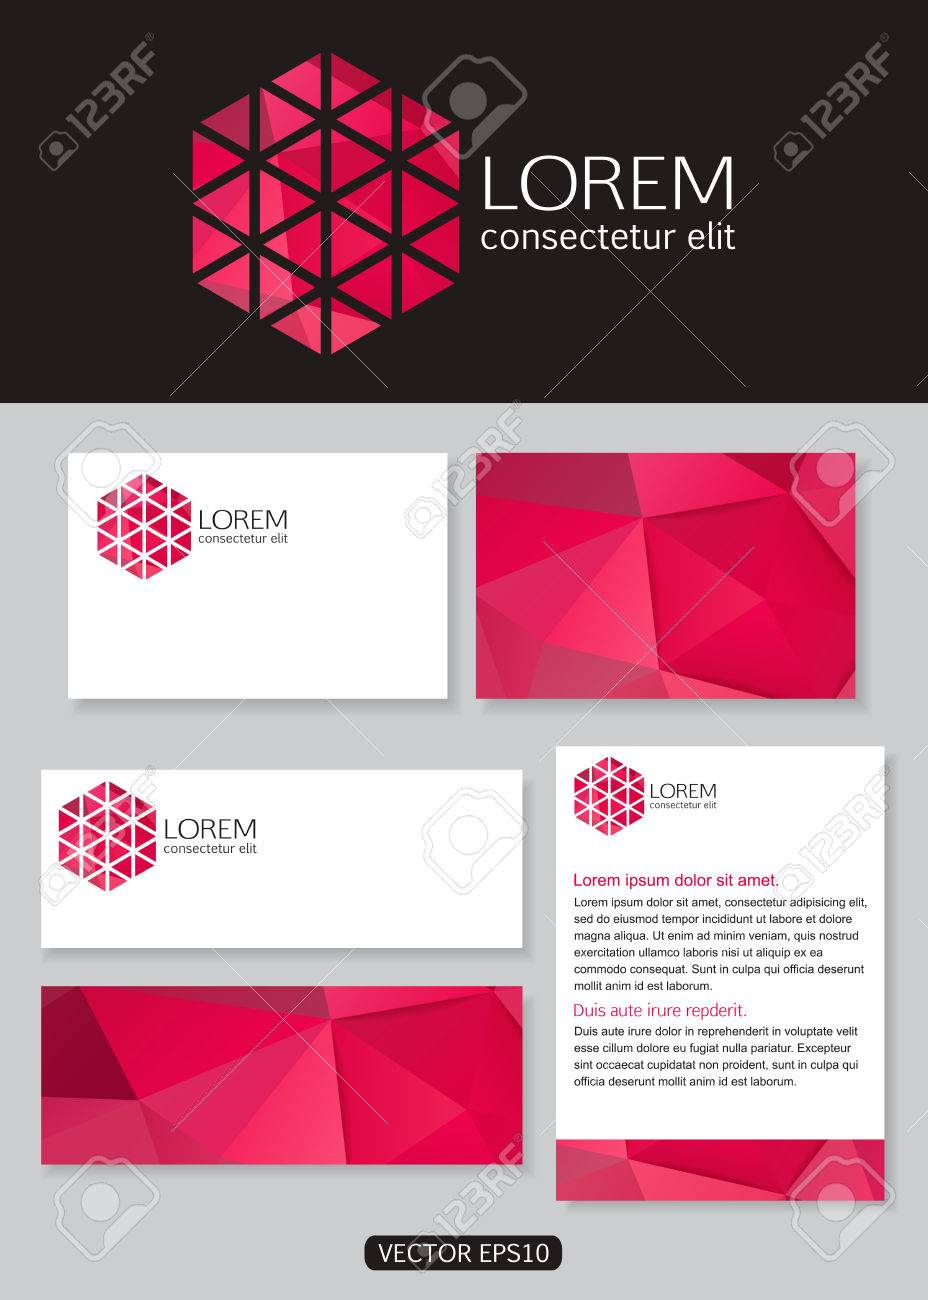 Business cards logo choice image free business cards geometric pink logo icon design with business cards banners geometric pink logo icon design with business magicingreecefo Gallery